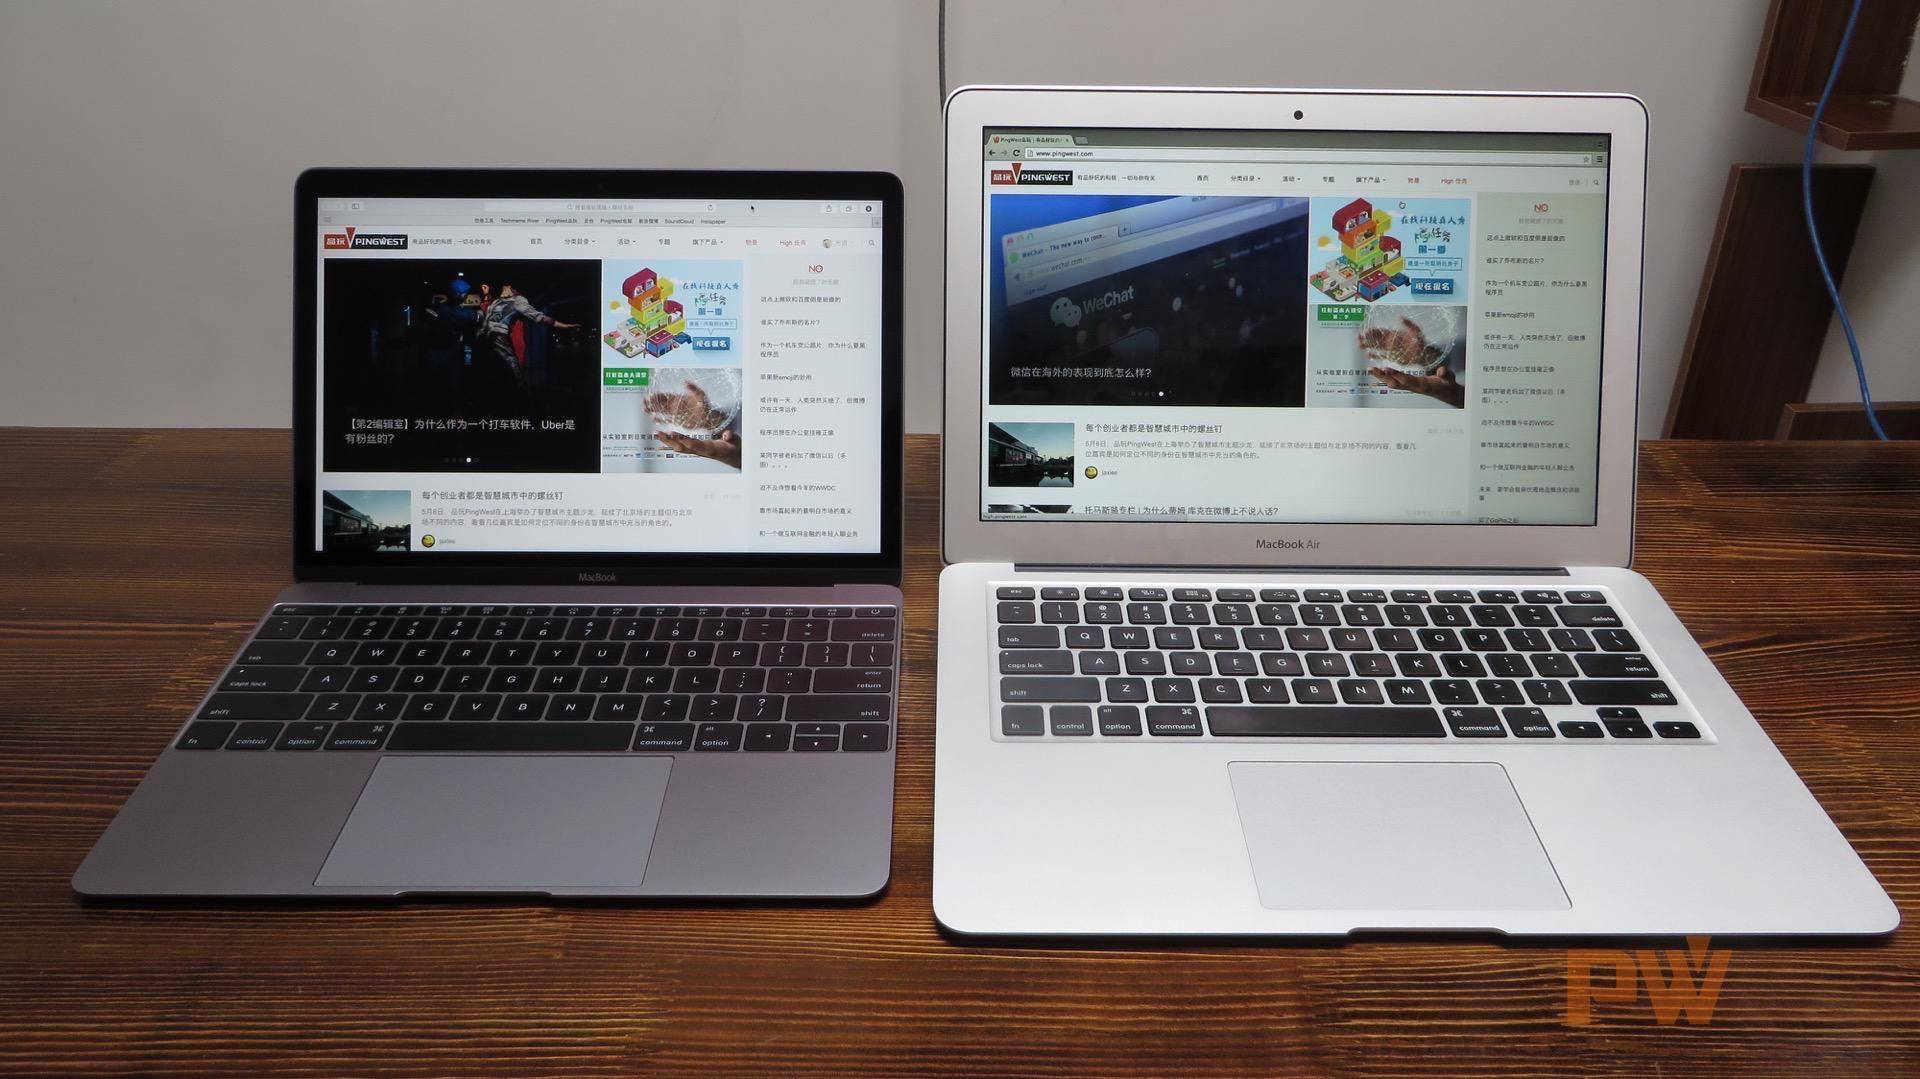 左:MacBook;右:13吋MacBook Air